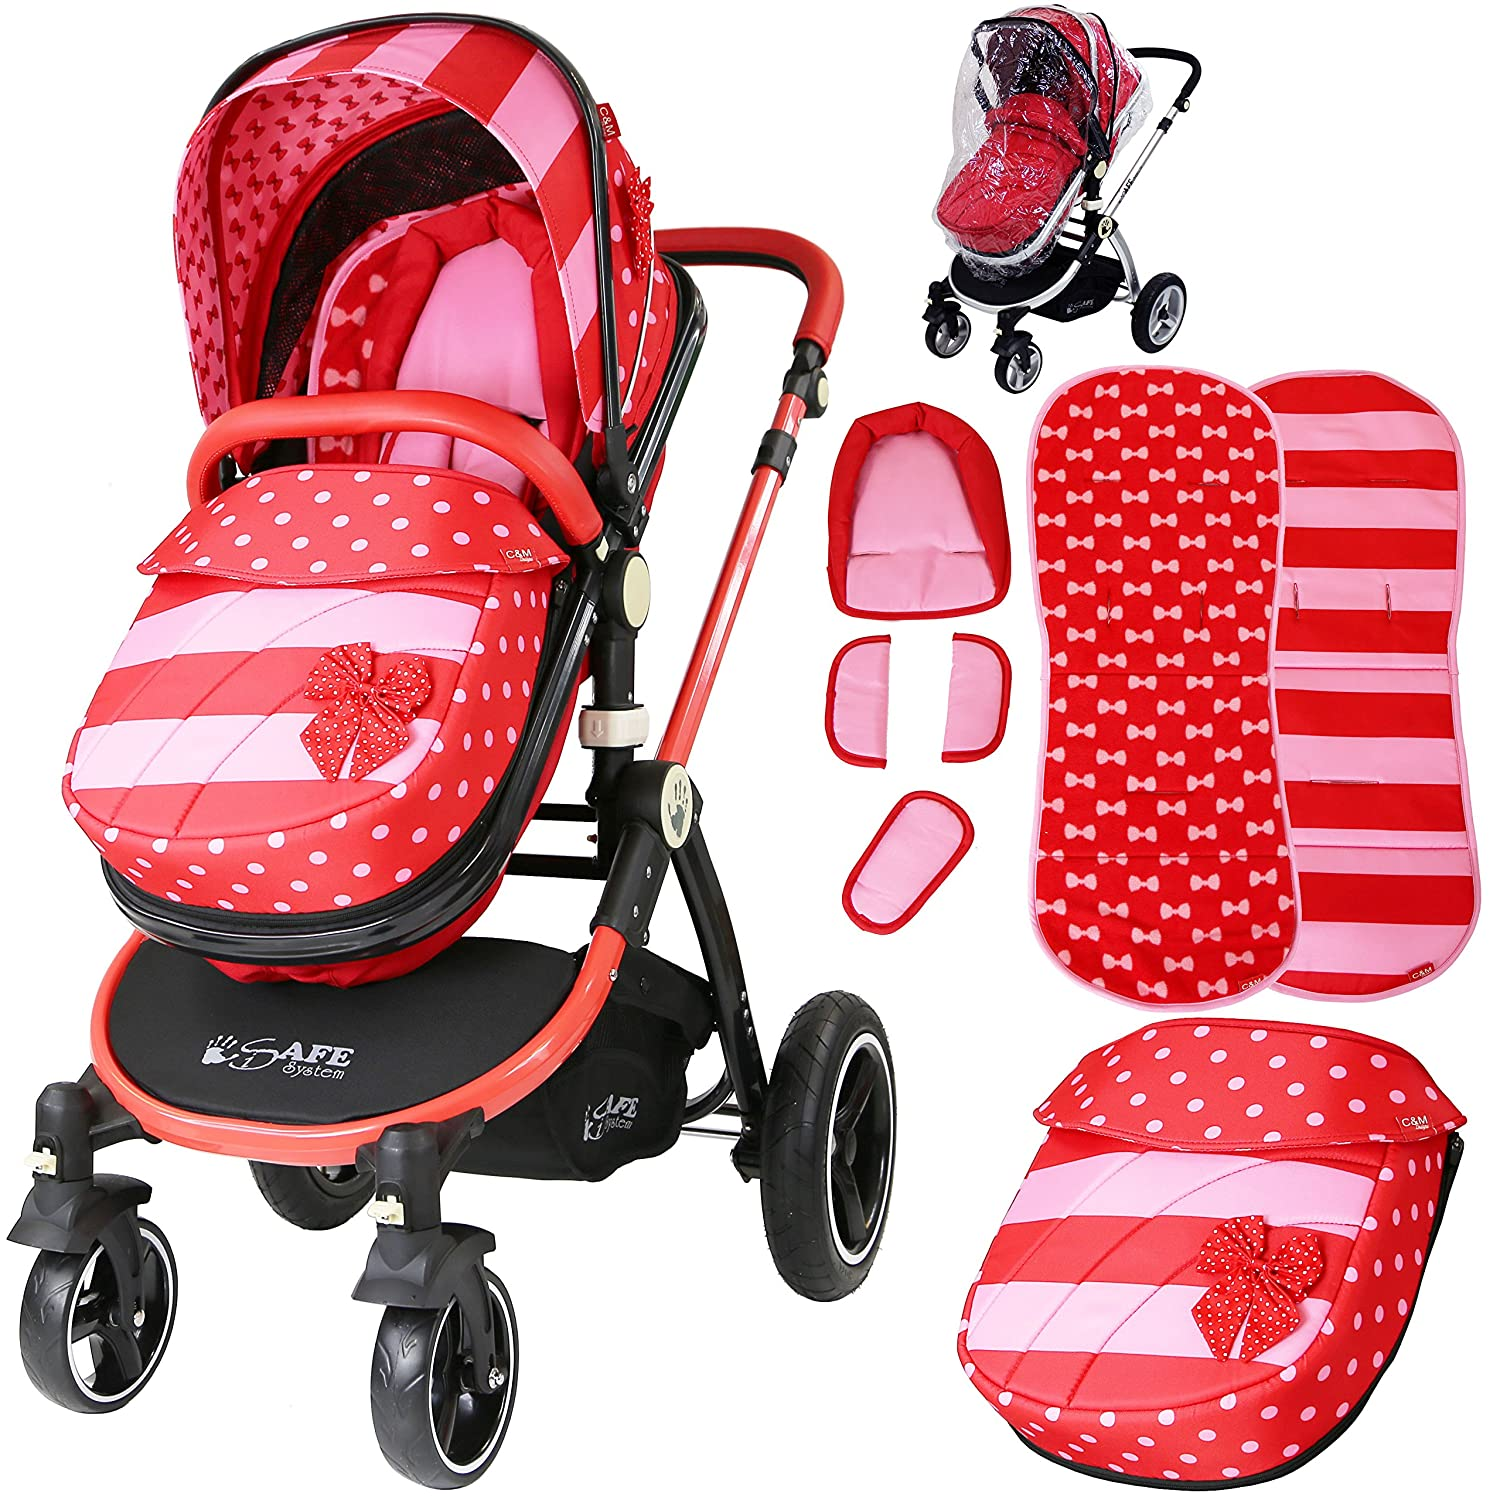 iSafe Baby Pram System 2in1 - Bow Dots is2in1Bow